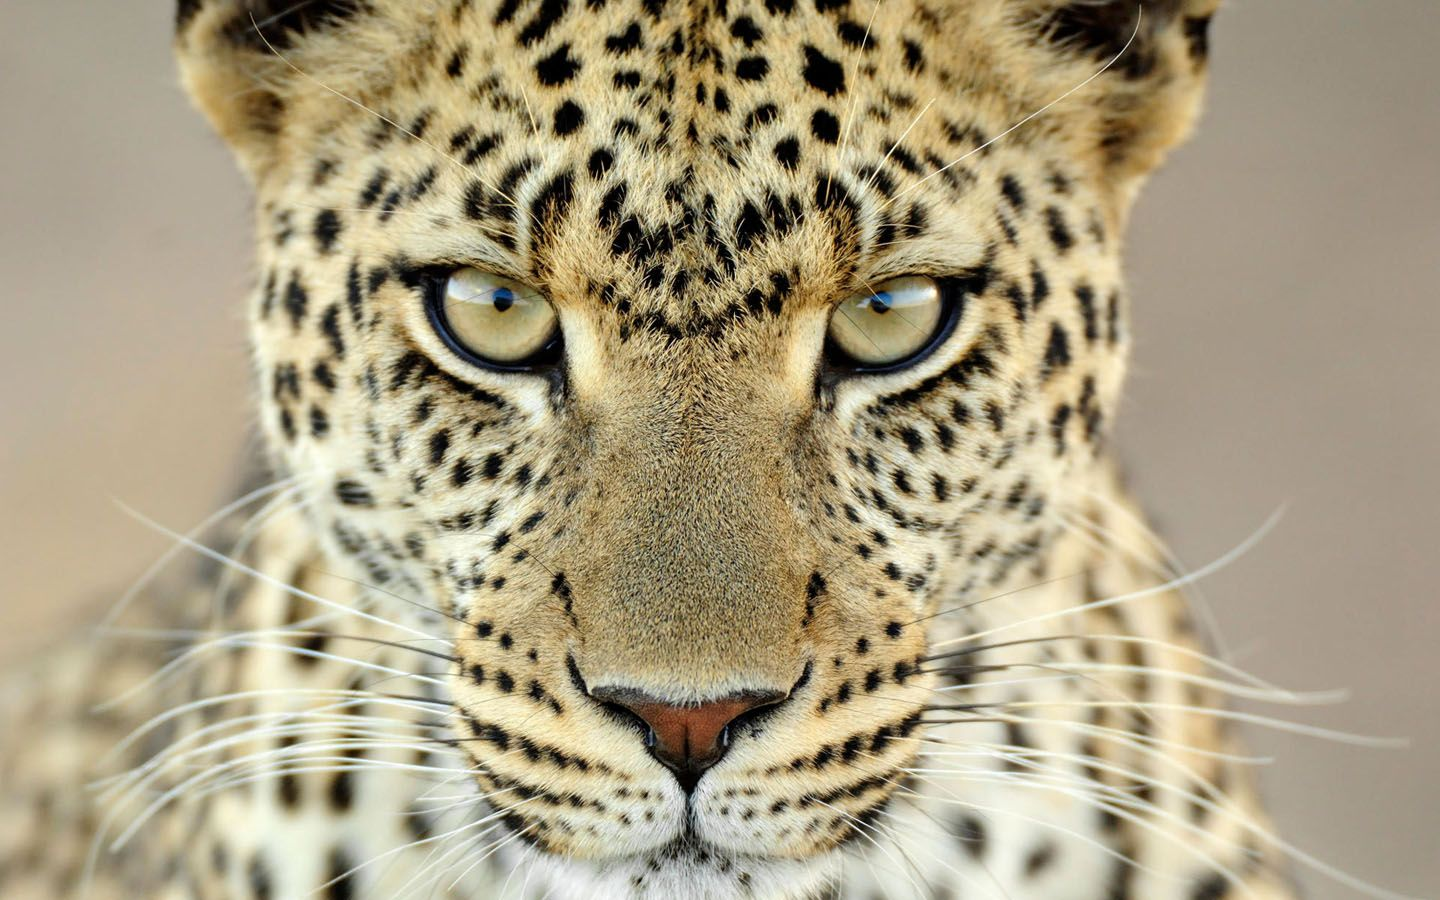 Female Leopard Tanzania 1440x900 Wallpapers Animal Wallpapers